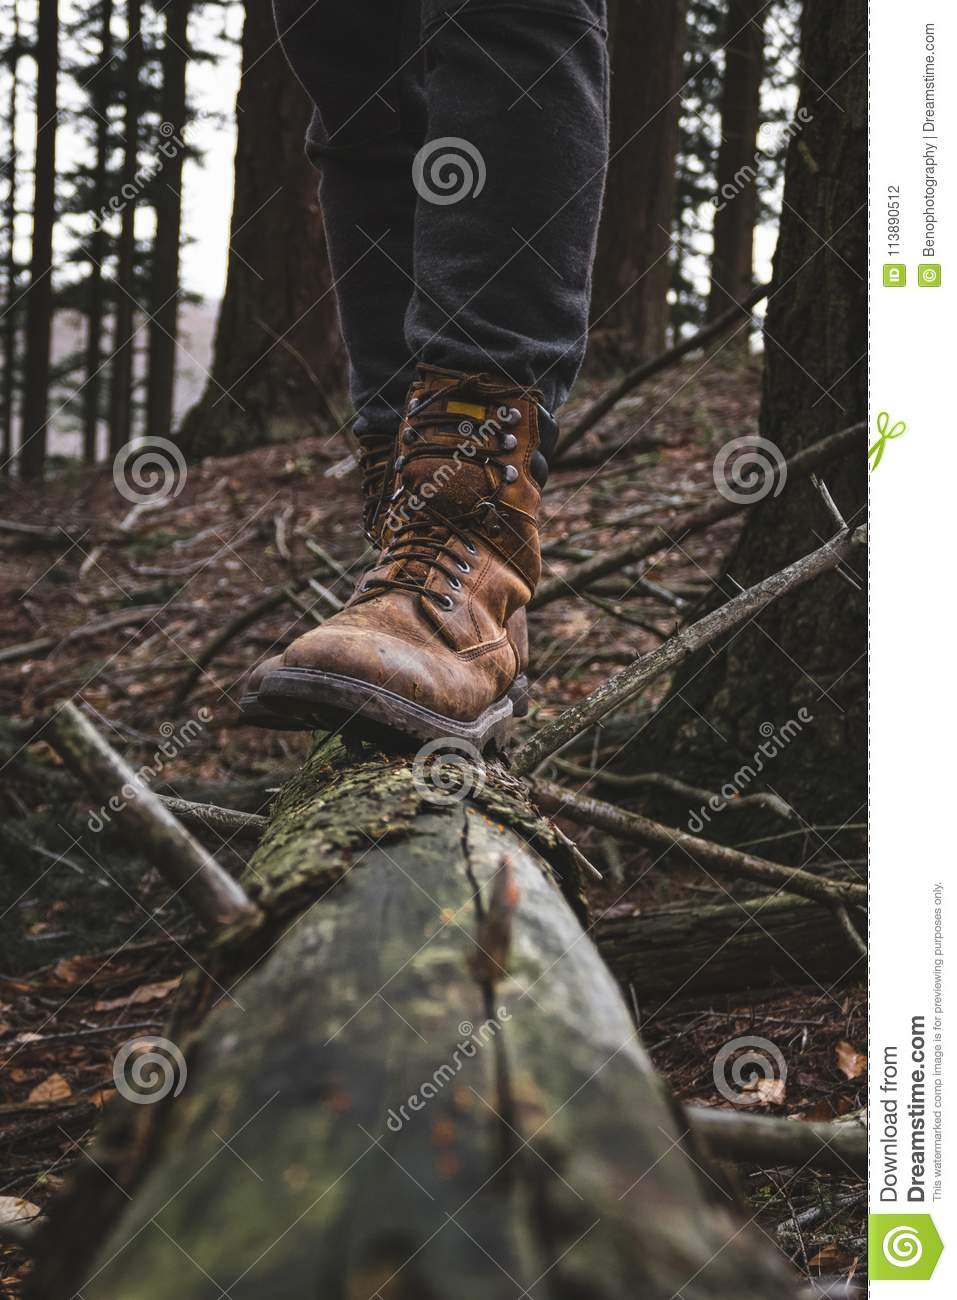 Man With Perfect Hikinng Boots Standing On The Fallen Tree